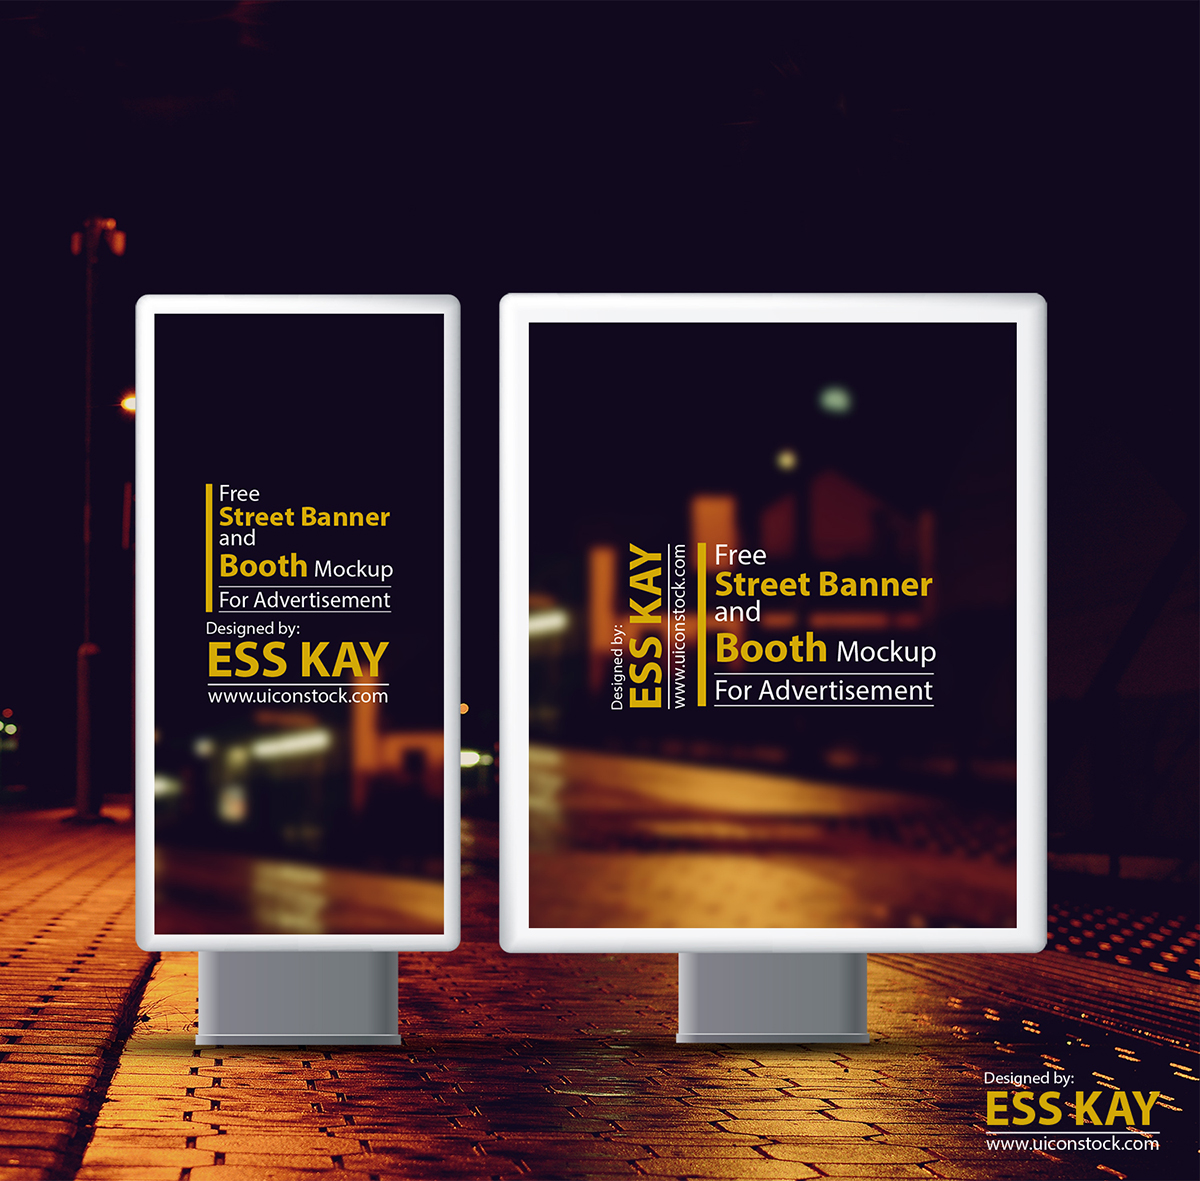 free-street-banners-mock-up-psd-for-advertisement-preview